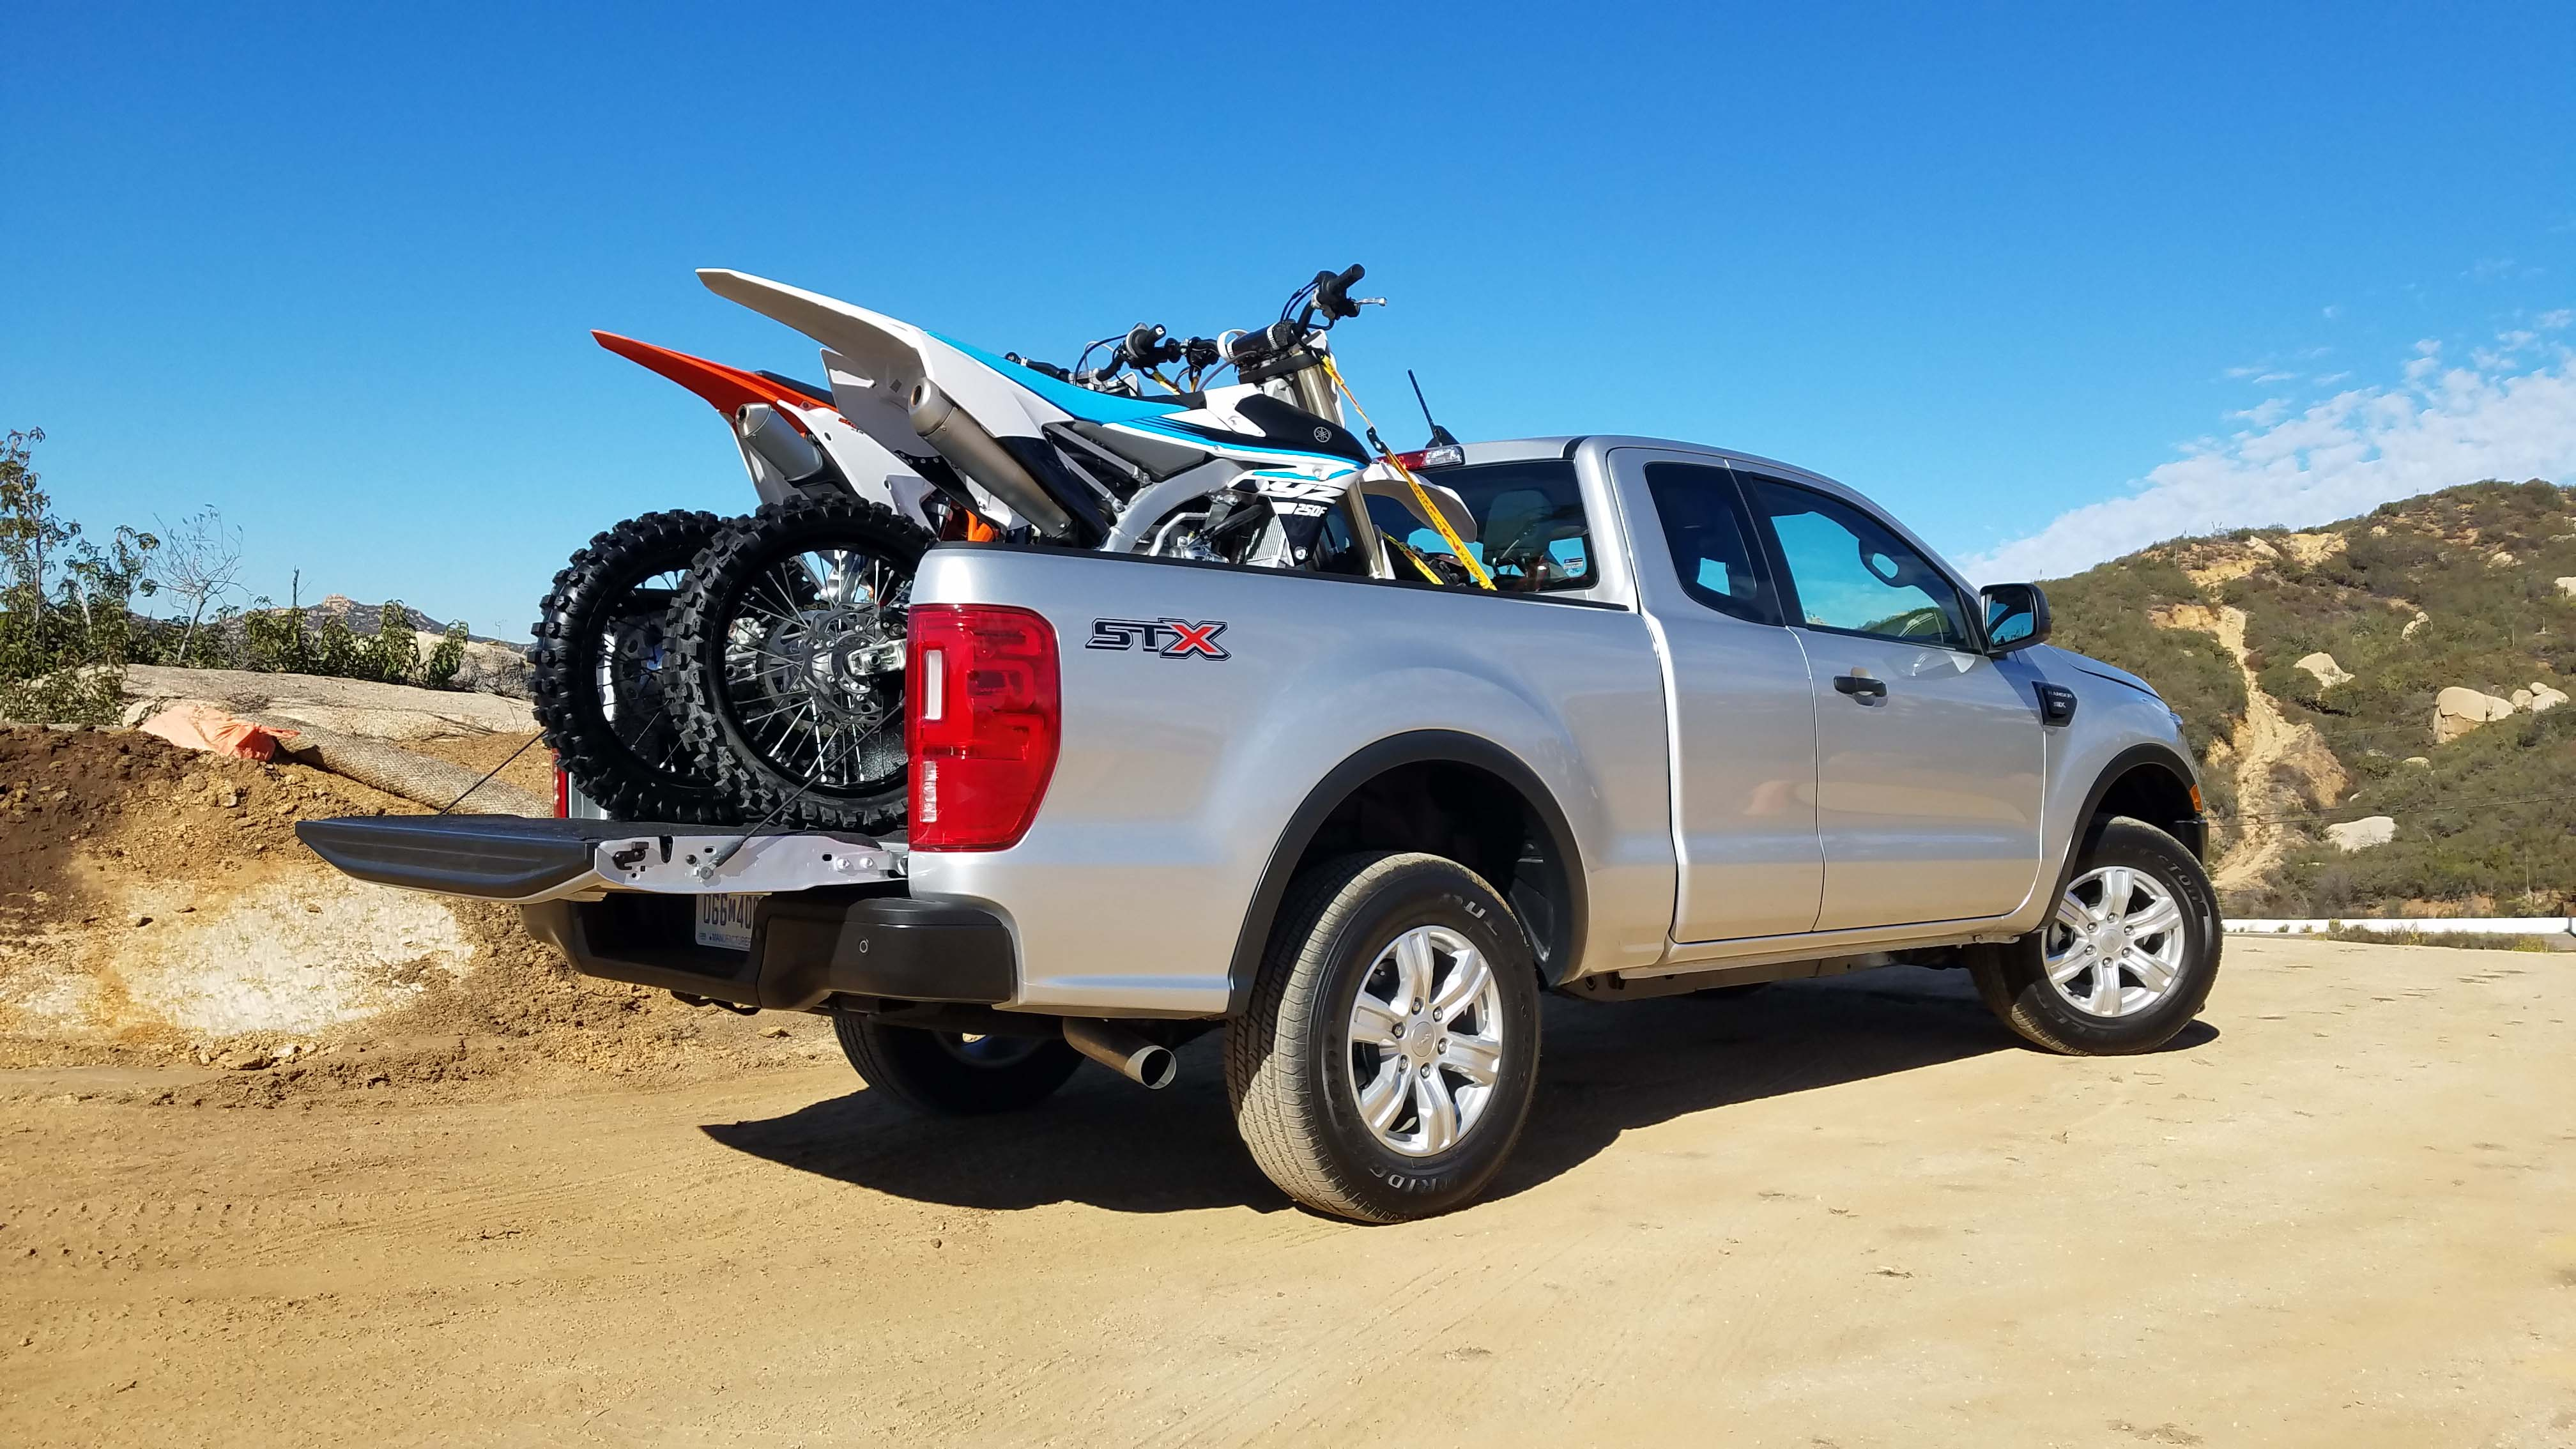 Adventurers wanted. The 2019 Ford Ranger boasts a best-in-class, 1,860-pound payload capacity.